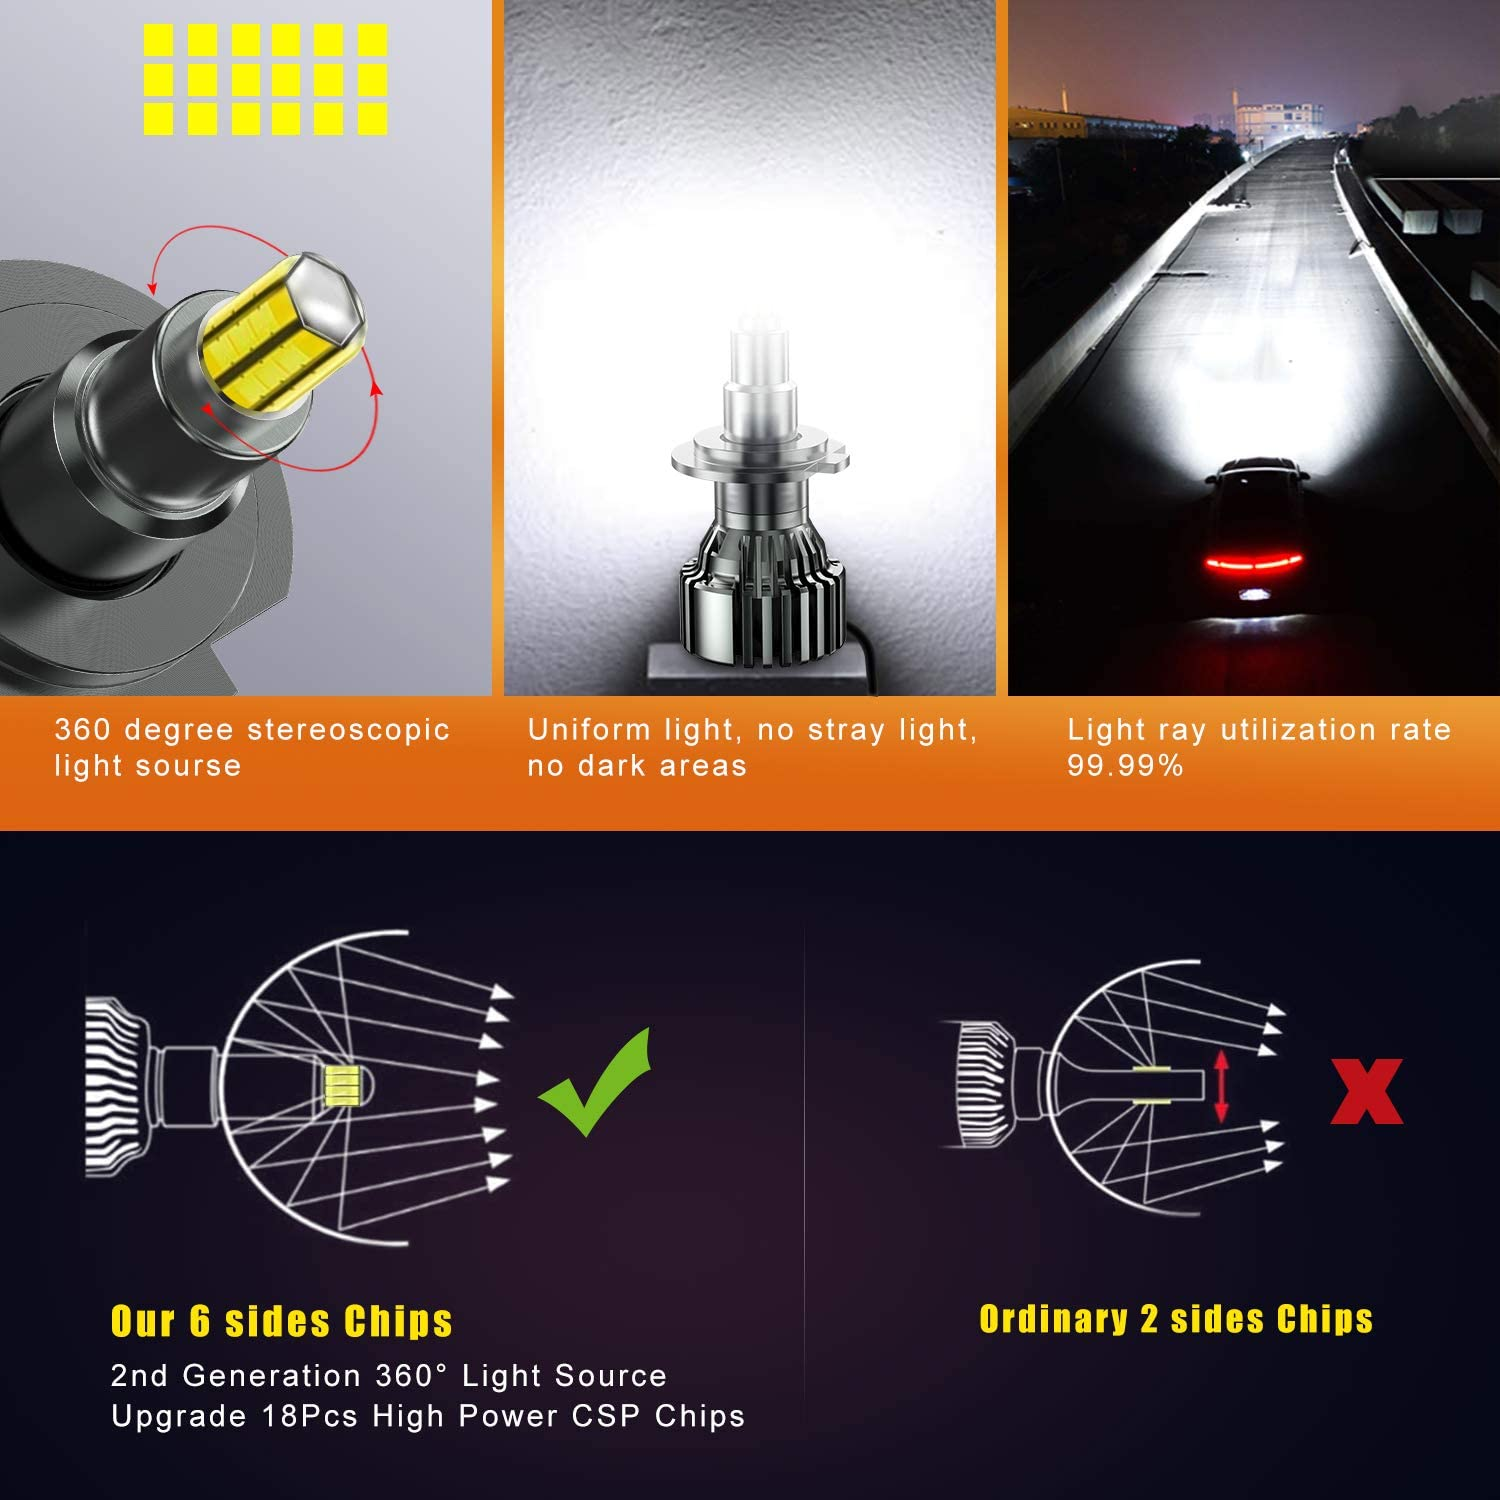 PULILANG H7 LED Headlight Bulbs,360 Degree Full Emitting Headlight Conversion Kit 60W 16000LM 6000K White Highly Recommended for Projector Headlights